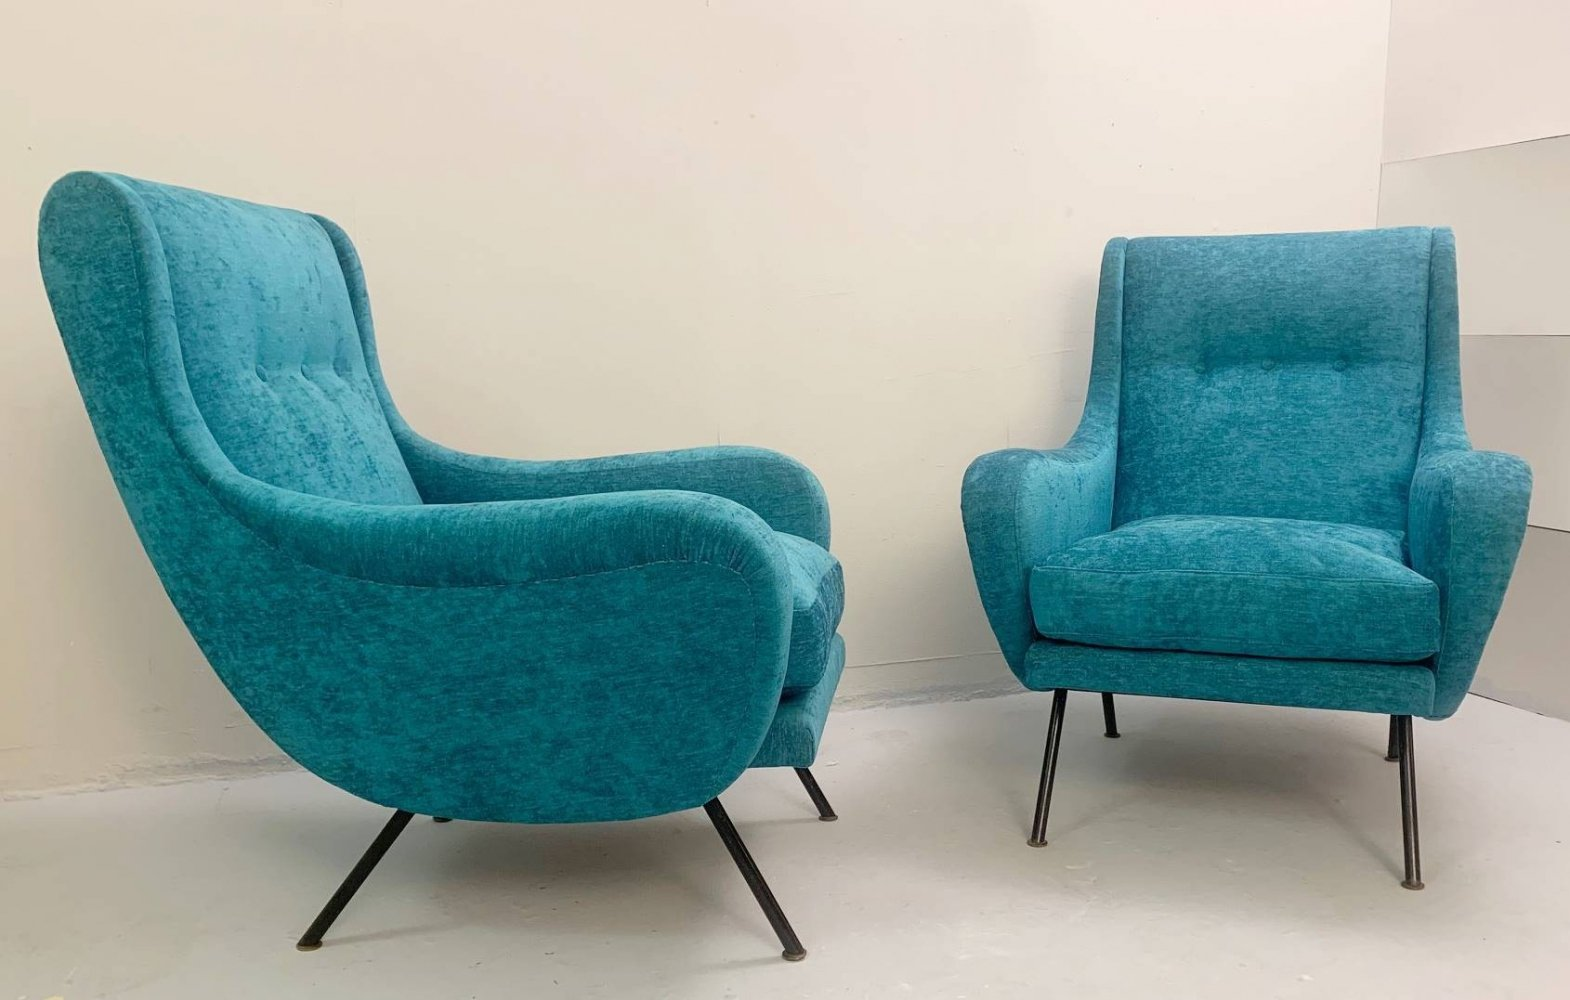 Pair of Turquoise Armchairs with steel frame, Italy 1950s